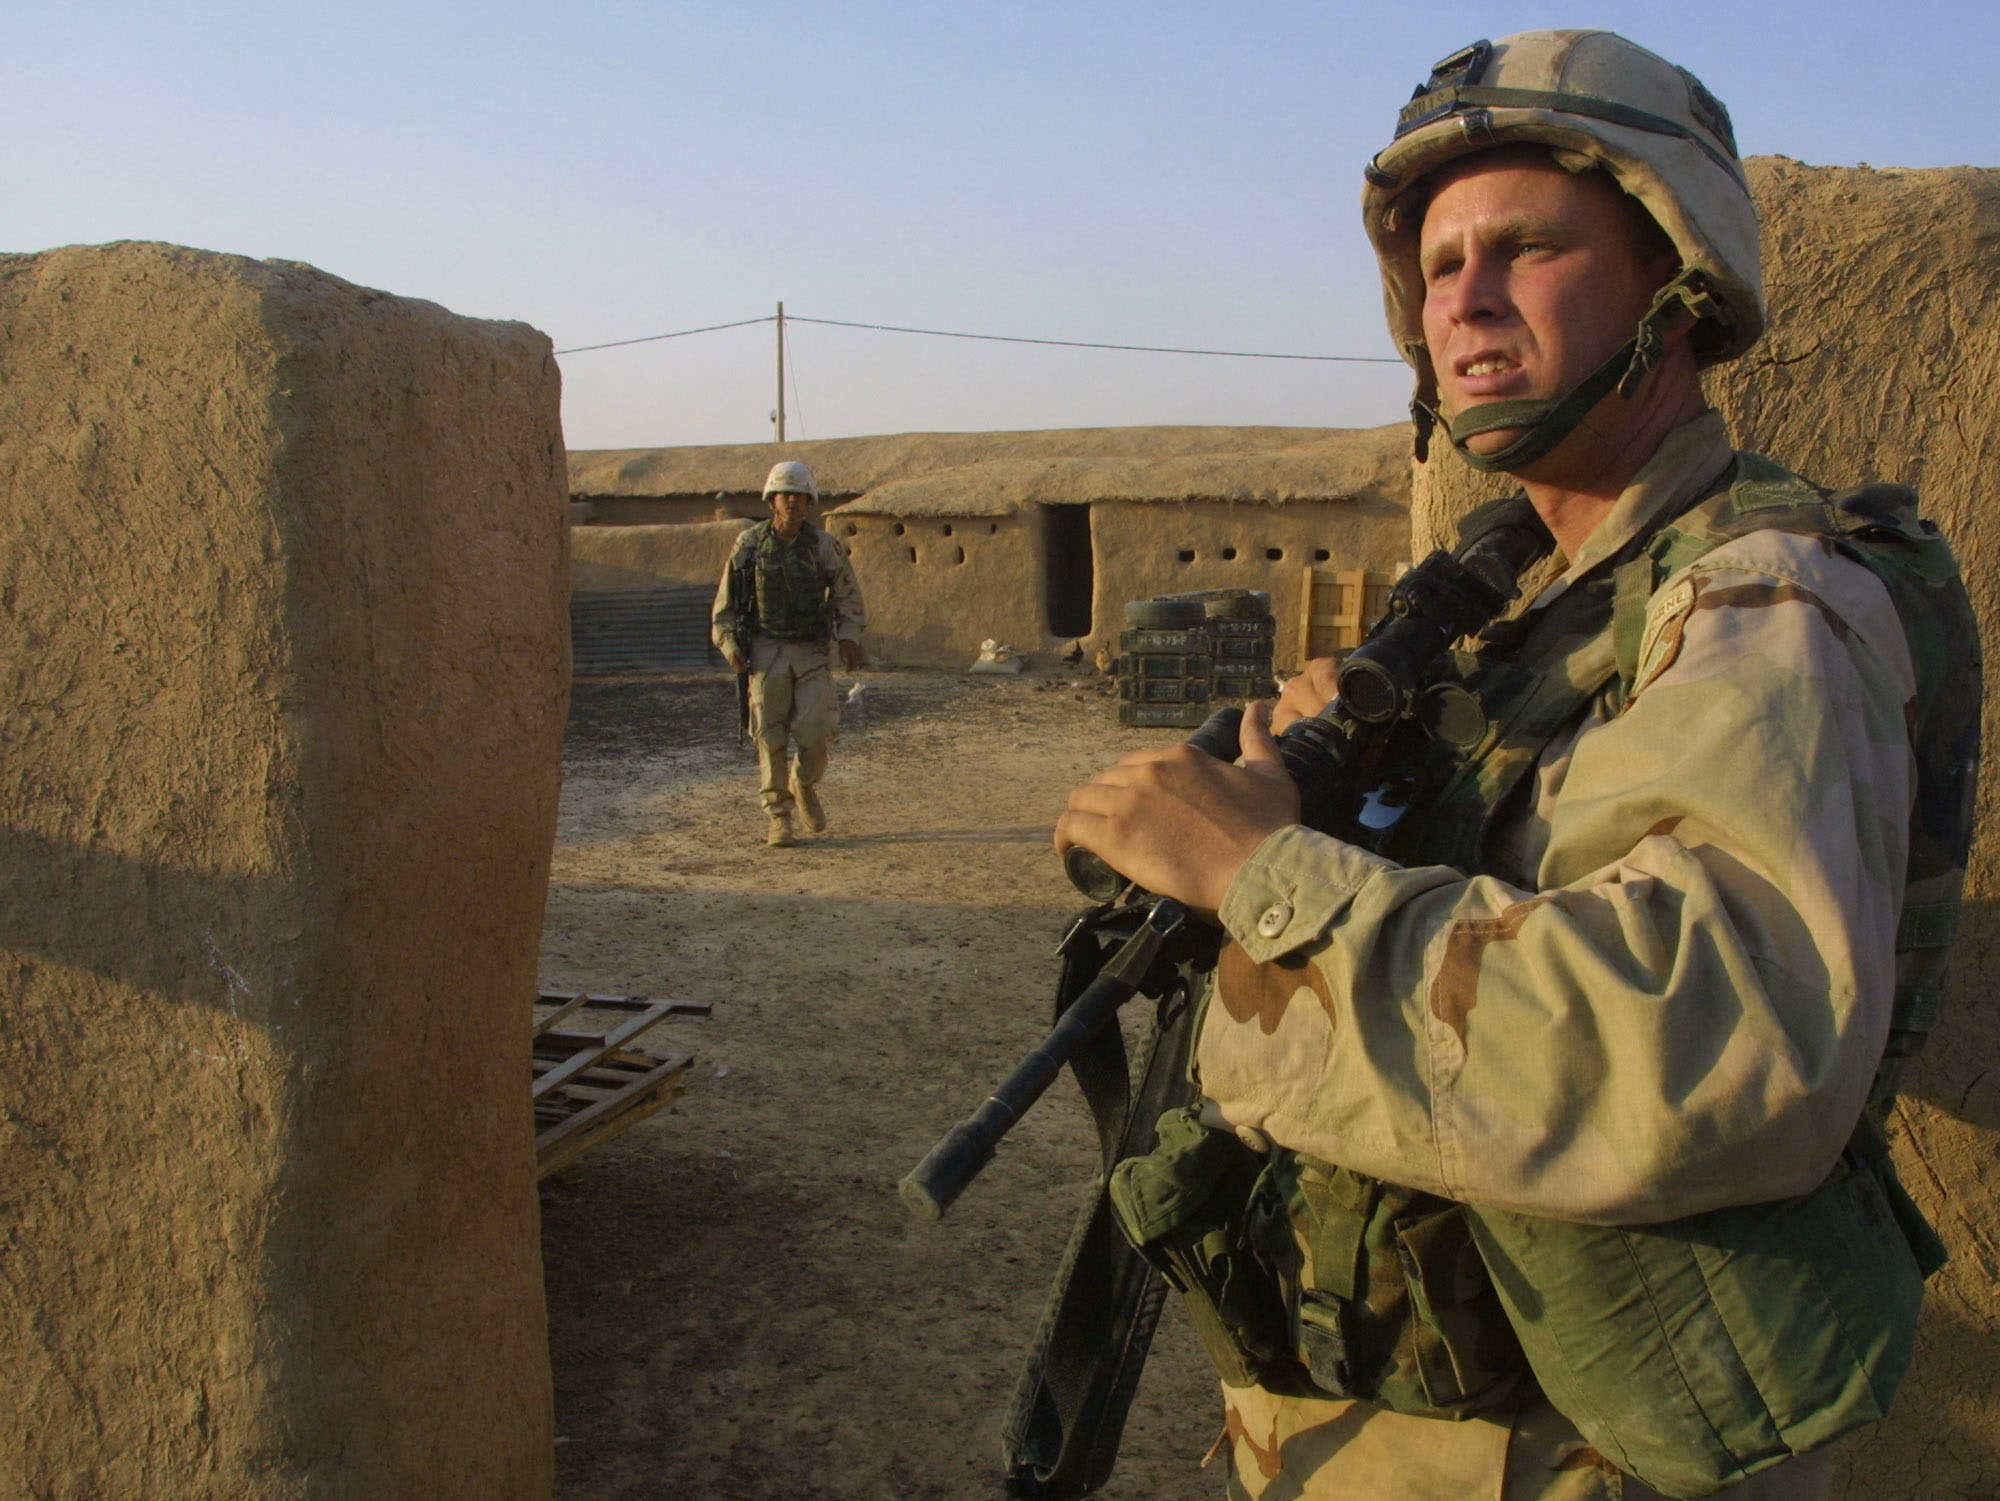 A US soldier from the 101st Airborne Division, Alpha company, guards the entrance of a house in the village of Alaiba, 70 kms southwest of the northern Iraqi city of Mosul, as others search it 01 October 2003. The soldiers confiscated a large quantity of weapons, including a canon, several mortars, and kalashnikovs in the village. Depressed by months of service in Iraq and under stress from daily attacks, many of the troops of the US 101st Airborne Division apparently now have only one dream: to go home. Officially 10 soldiers have been killed and 122 wounded in the province since they were deployed here on April 22. (AFP)